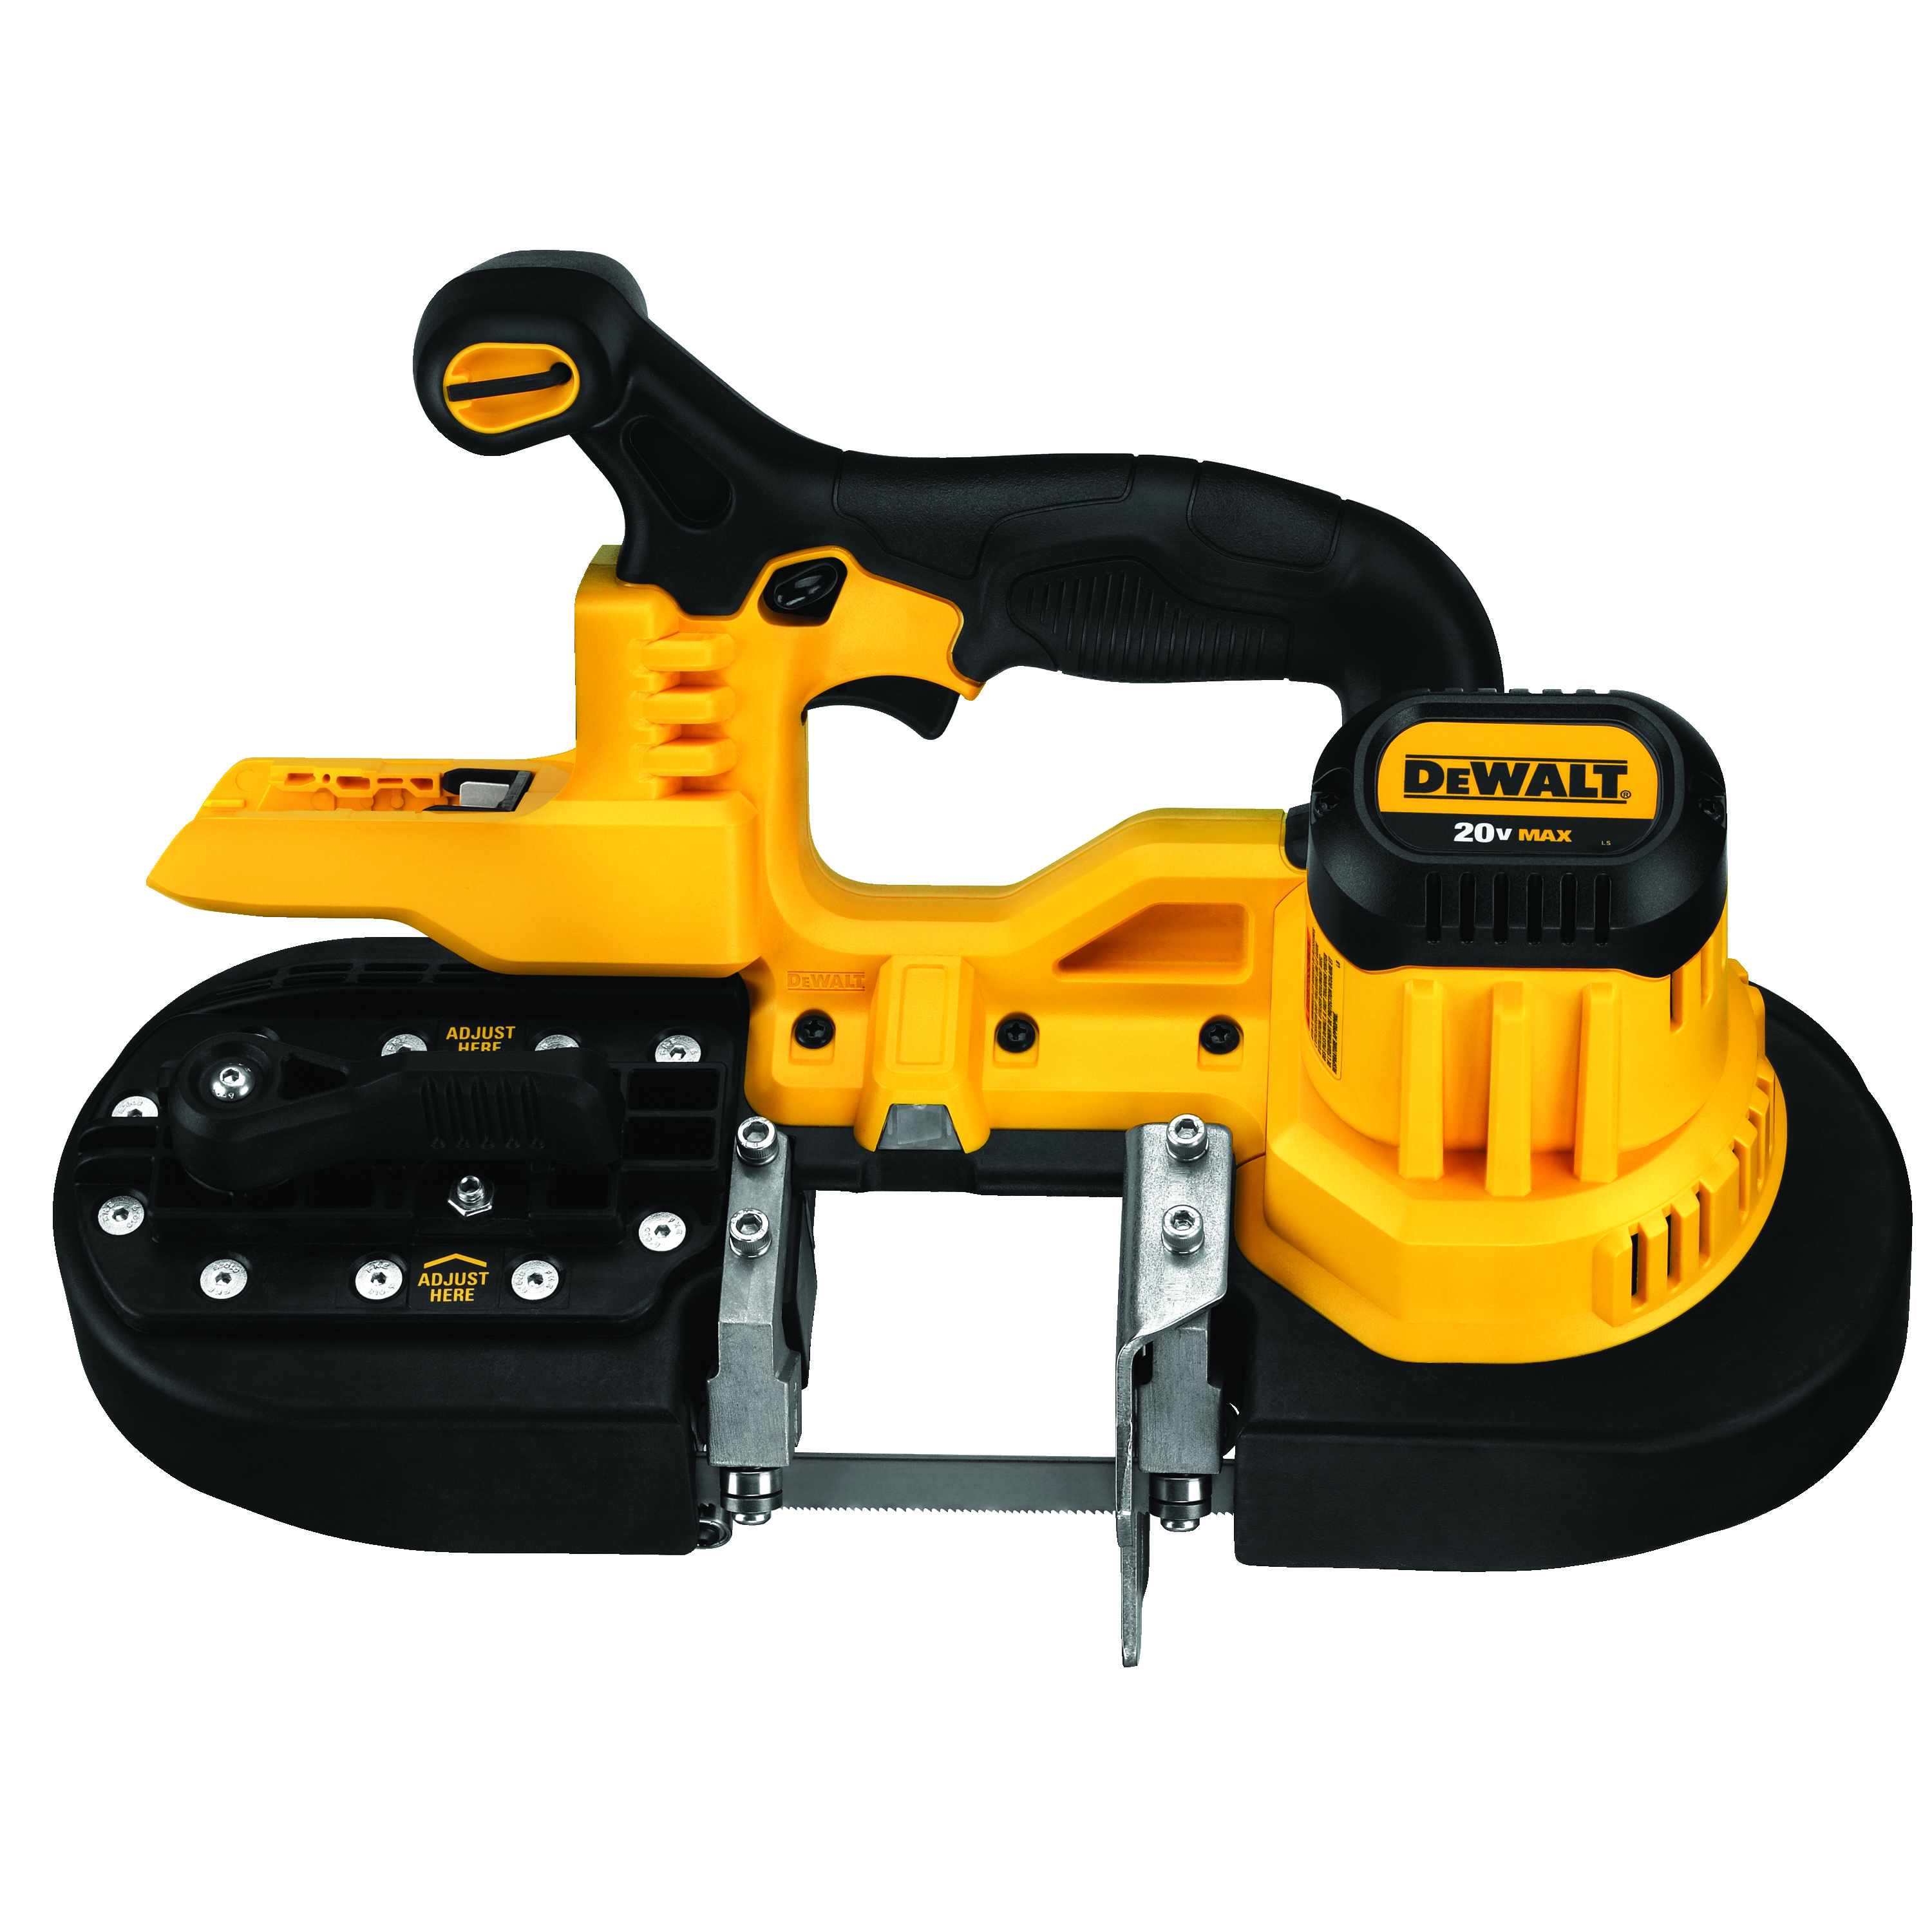 DeWALT® DCS371B Portable Cordless Band Saw, 2-1/2 in Cutting, 32-7/8 in L Blade, 20 VDC, Lithium-Ion Battery, Tool Only